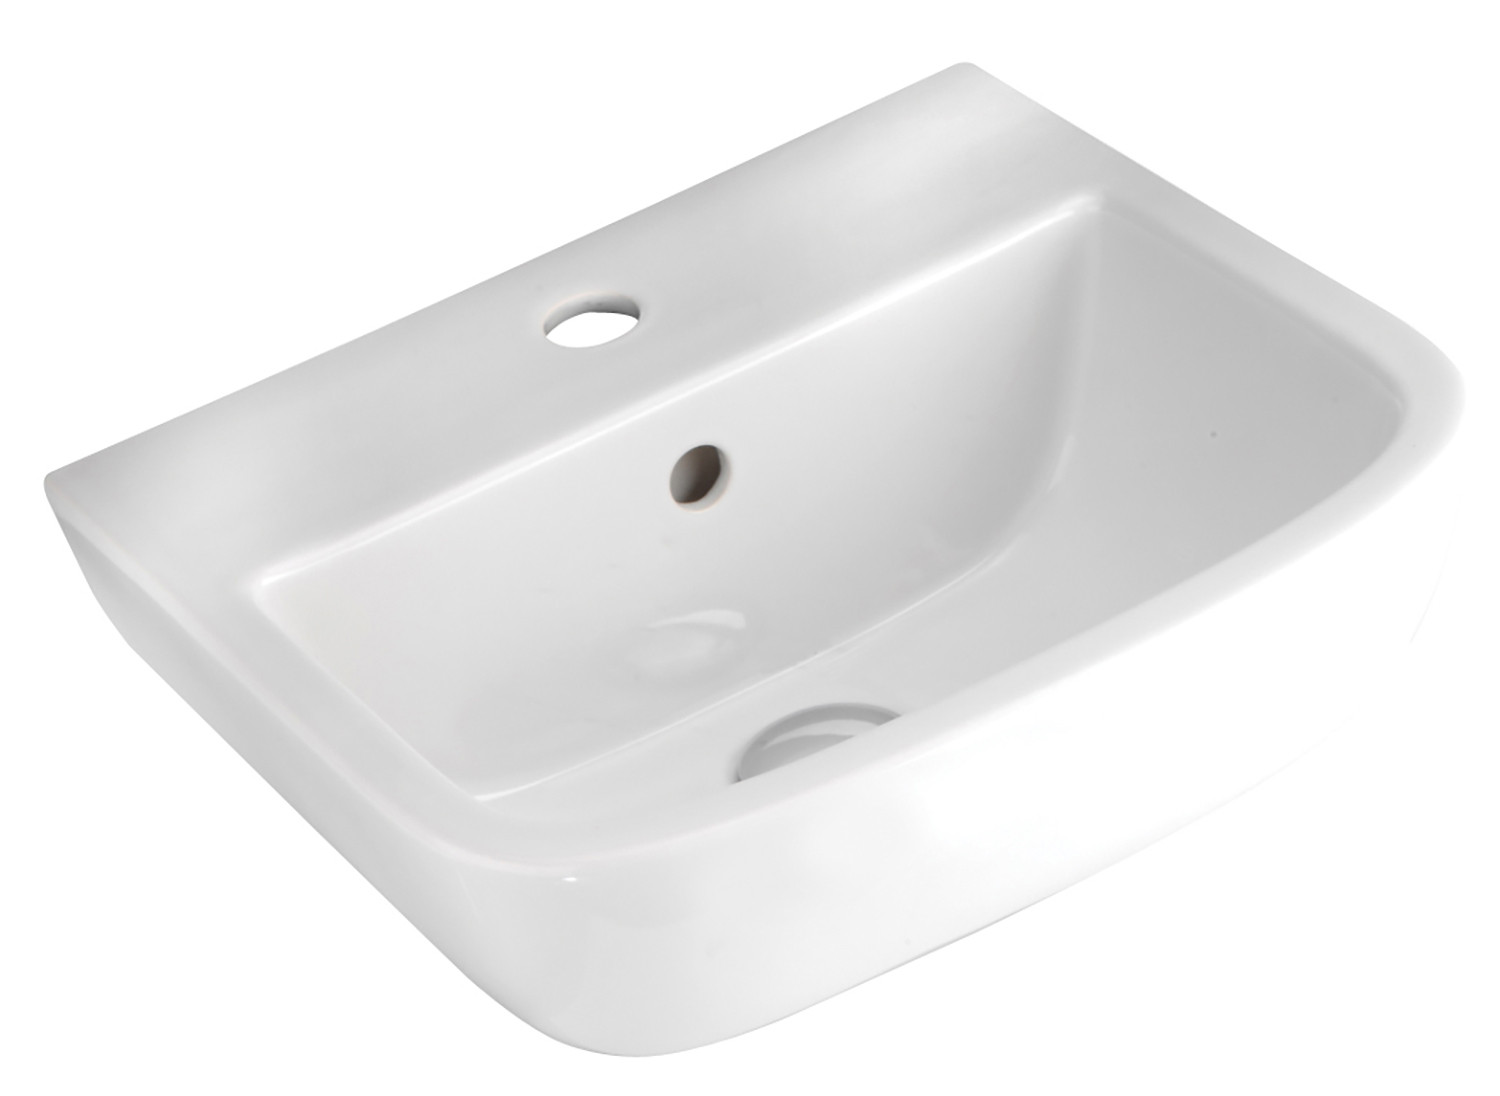 Series 600 400mm Cloakroom Basin - 1 Tap Hole